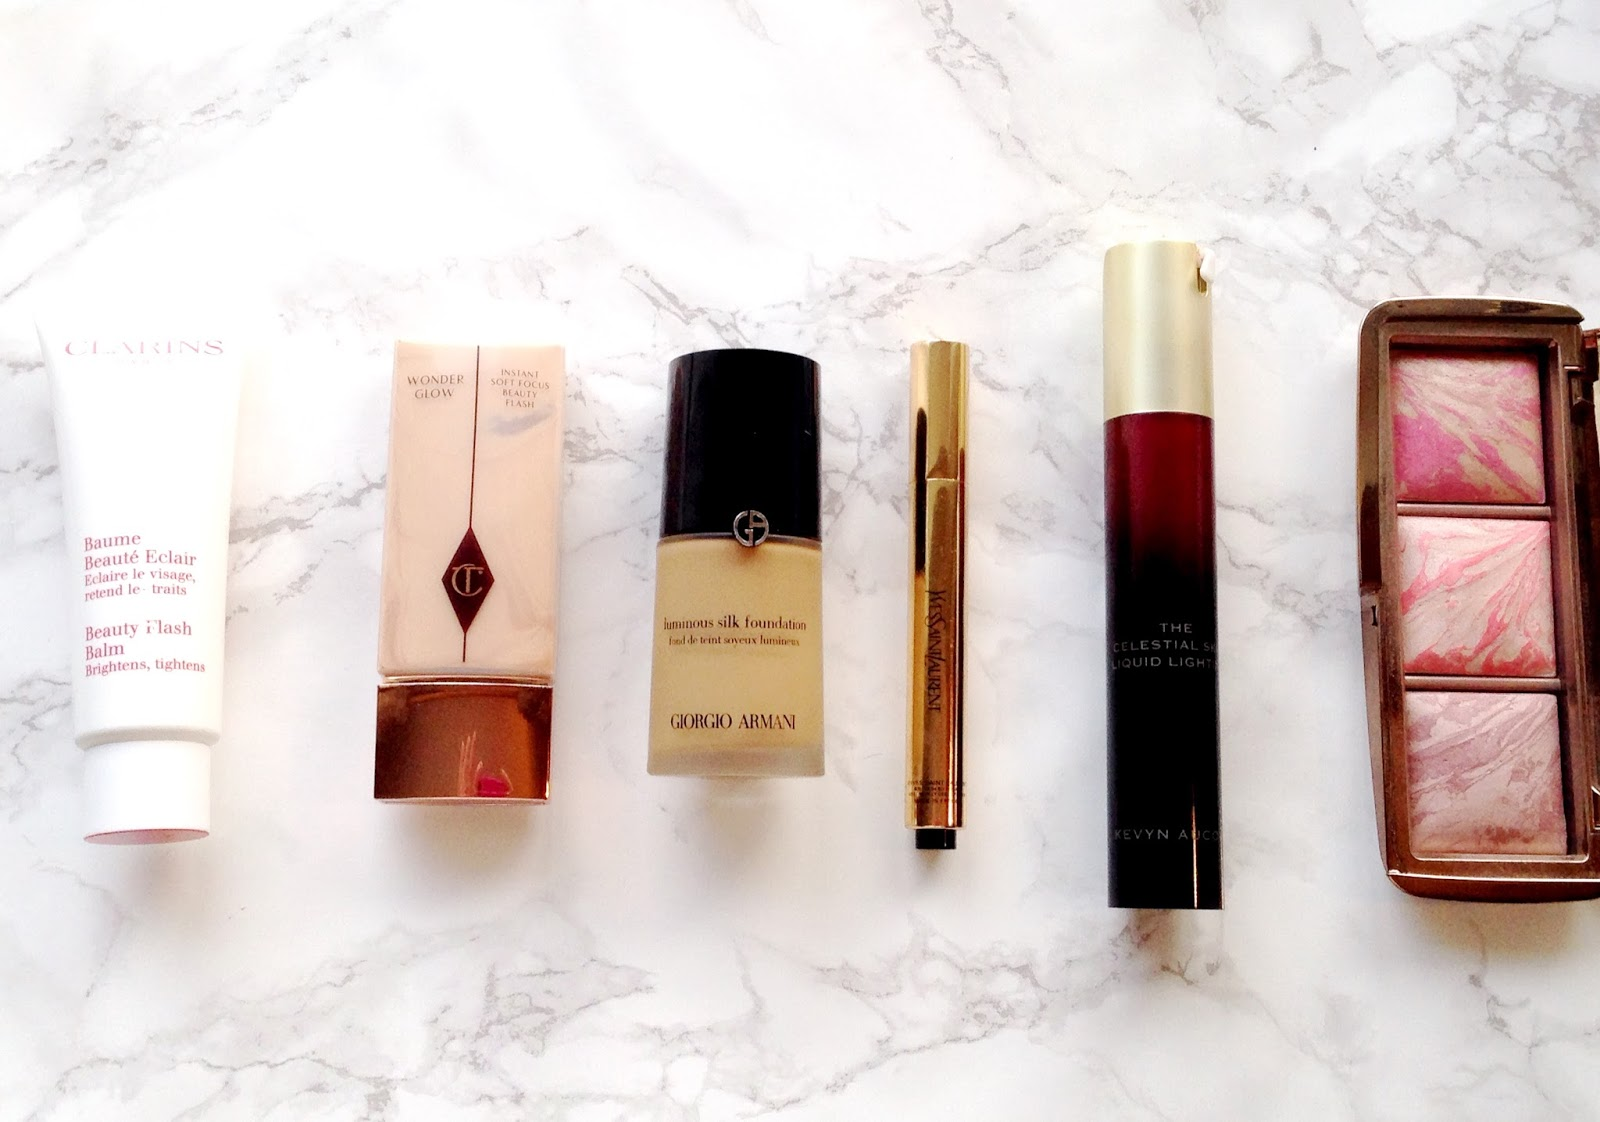 How to fake glowing, radiant skin with Clarins, Kevyn Aucoin